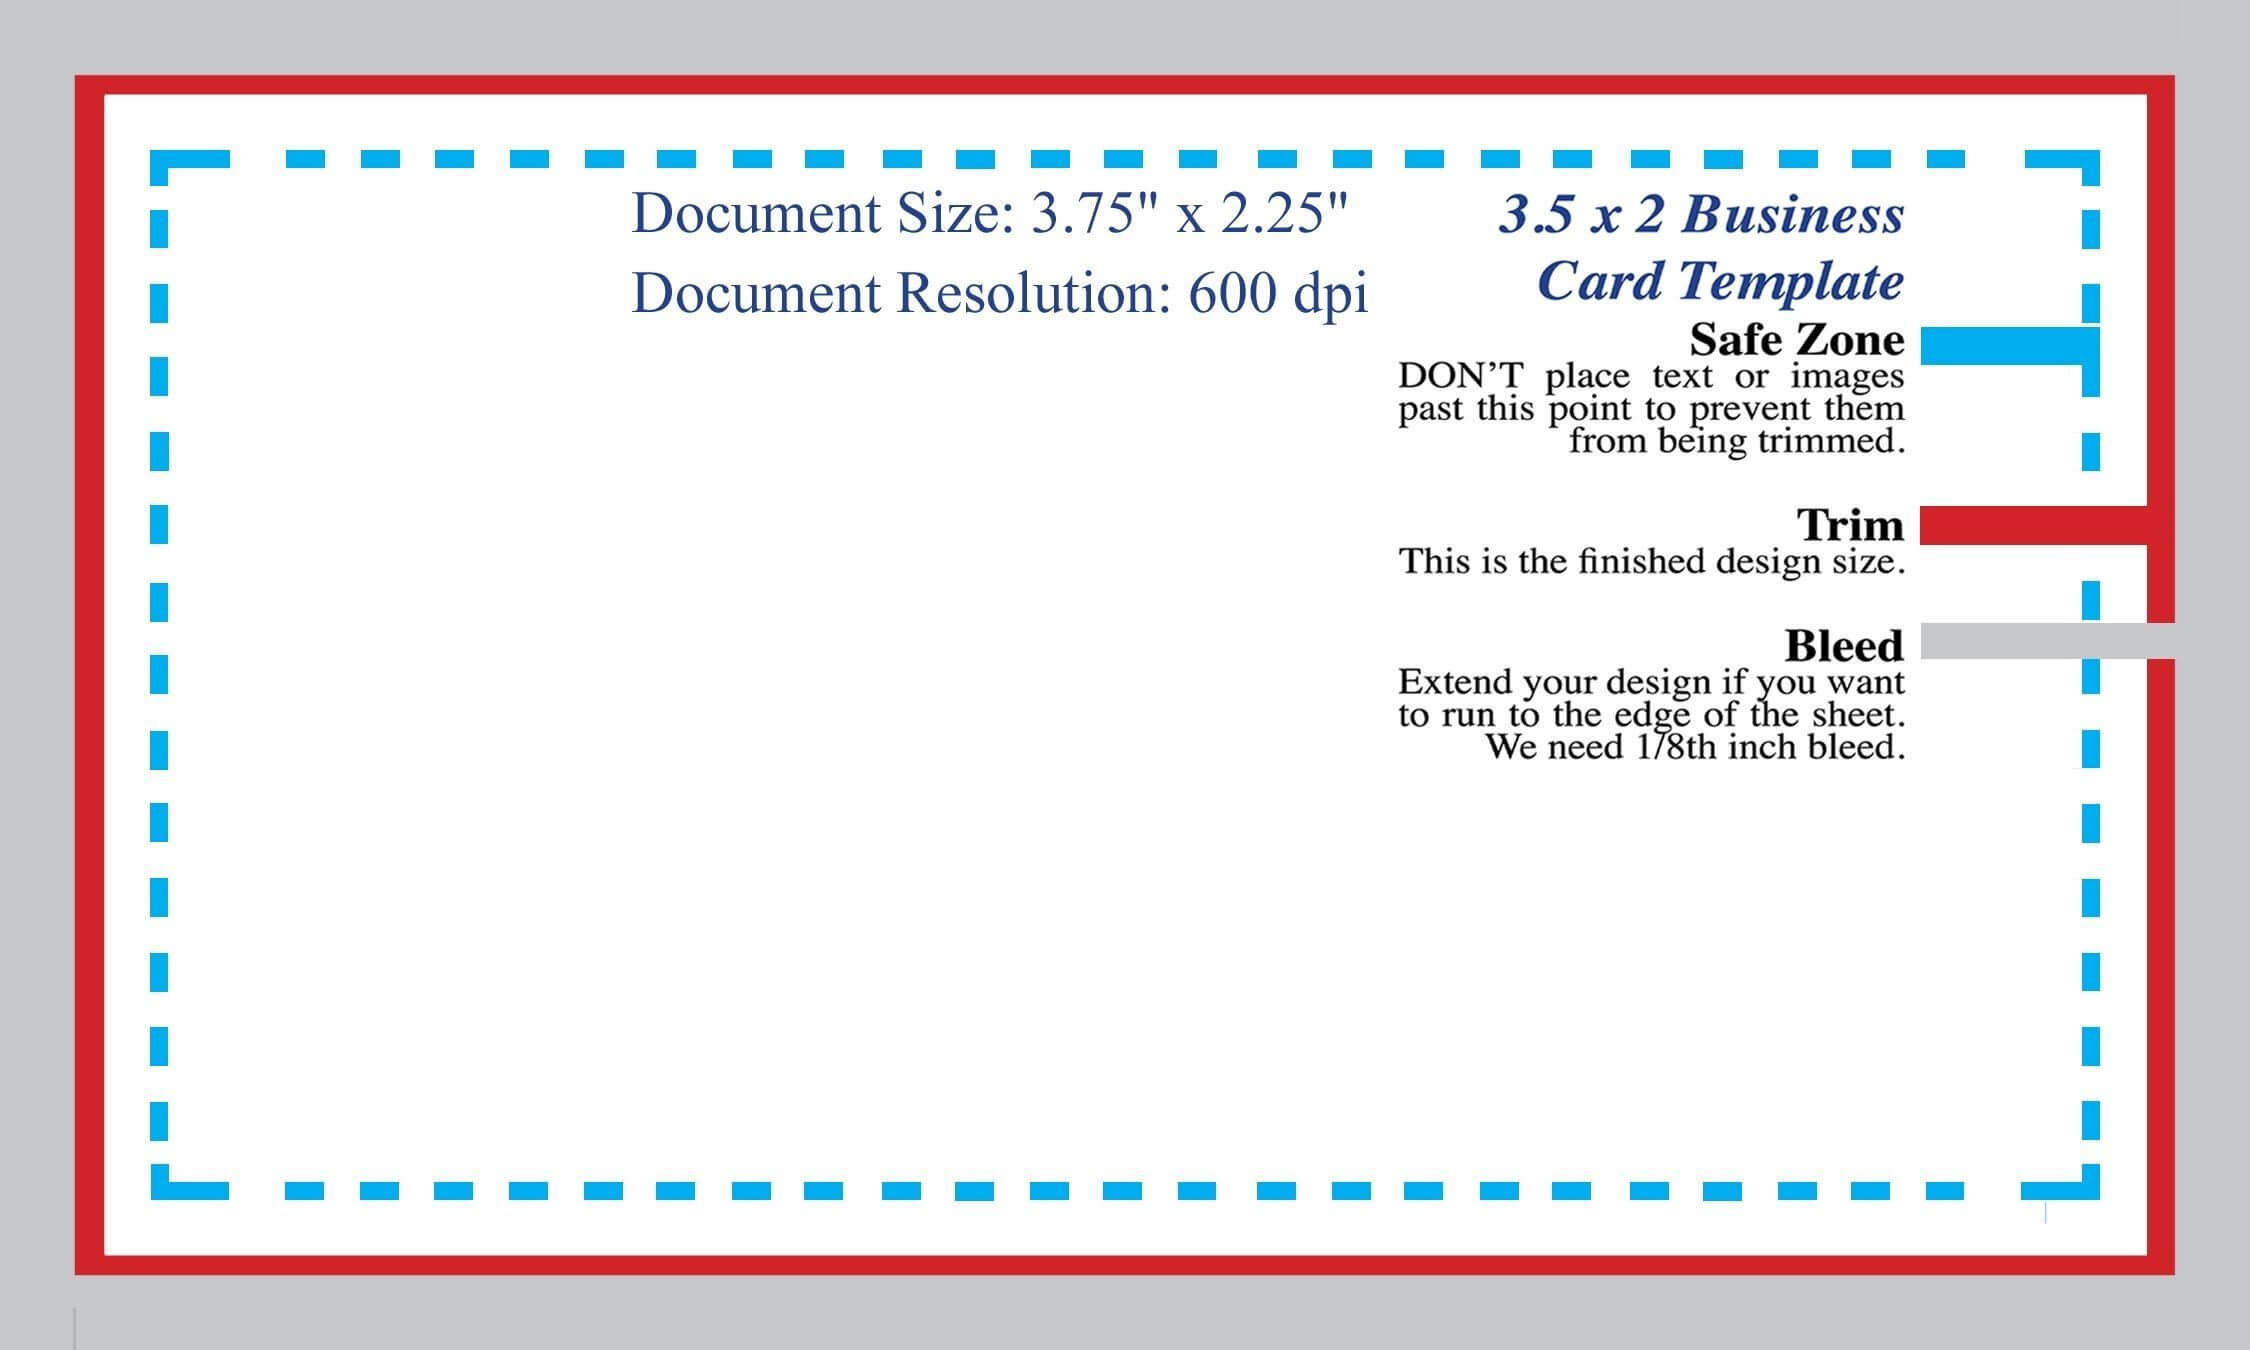 011 Business Card Template Psd File Free Download Visiting With Business Card Size Template Psd